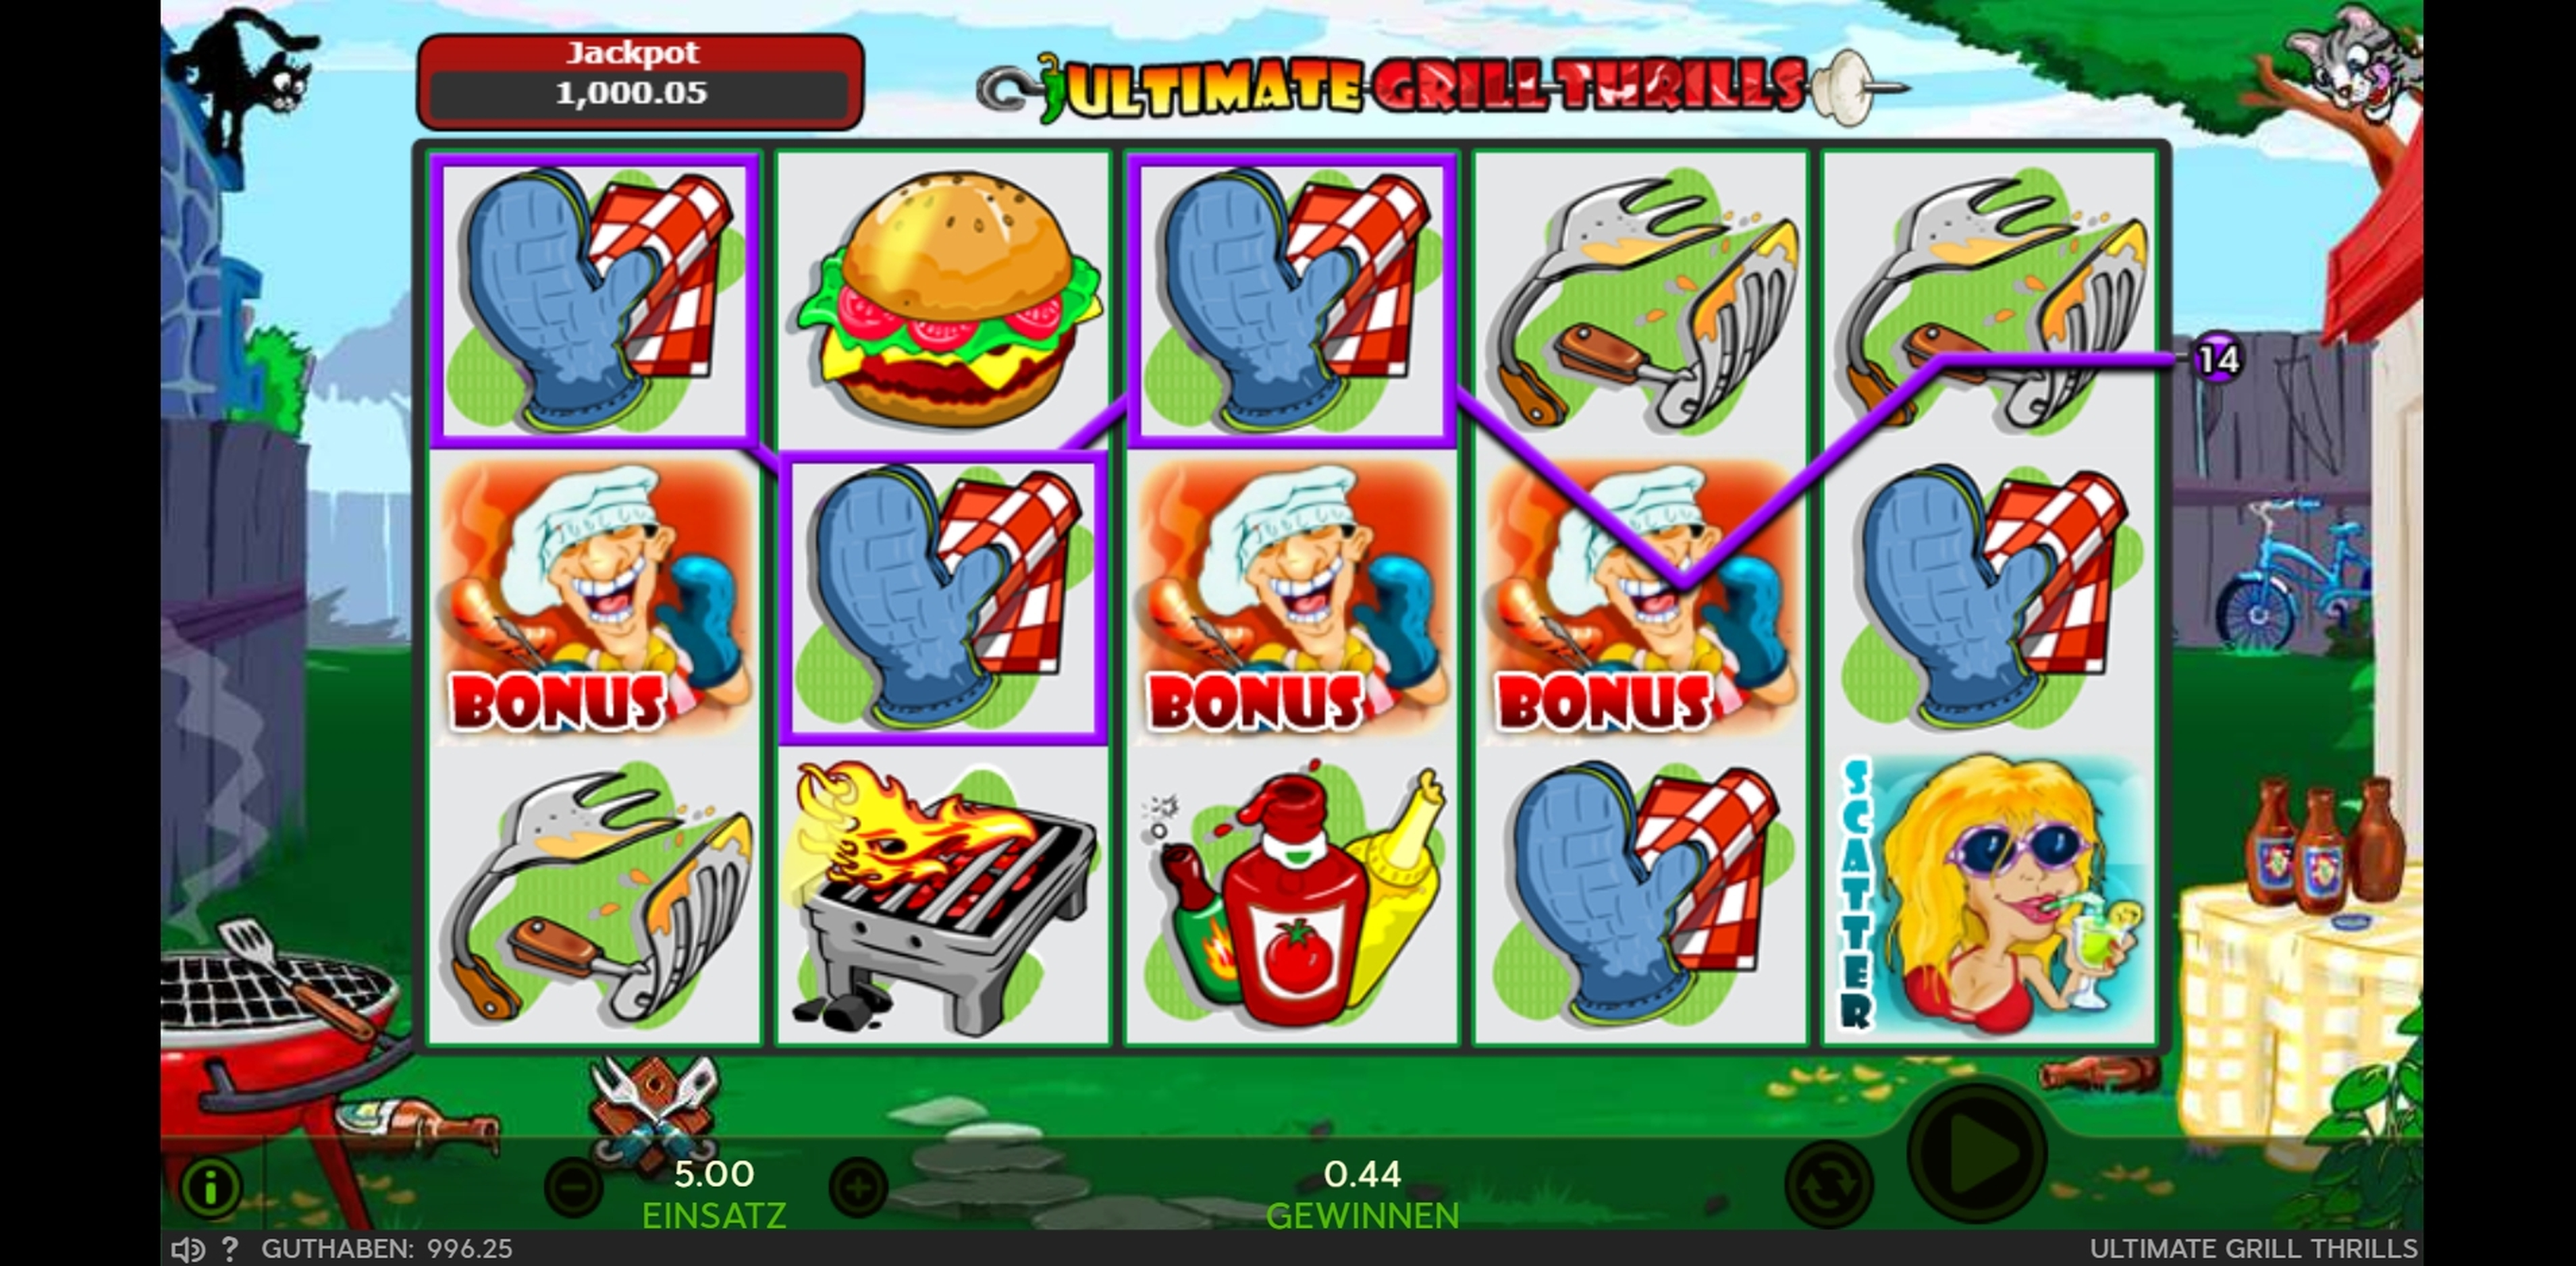 Win Money in Ultimate Grill Thrills Free Slot Game by 888 Gaming